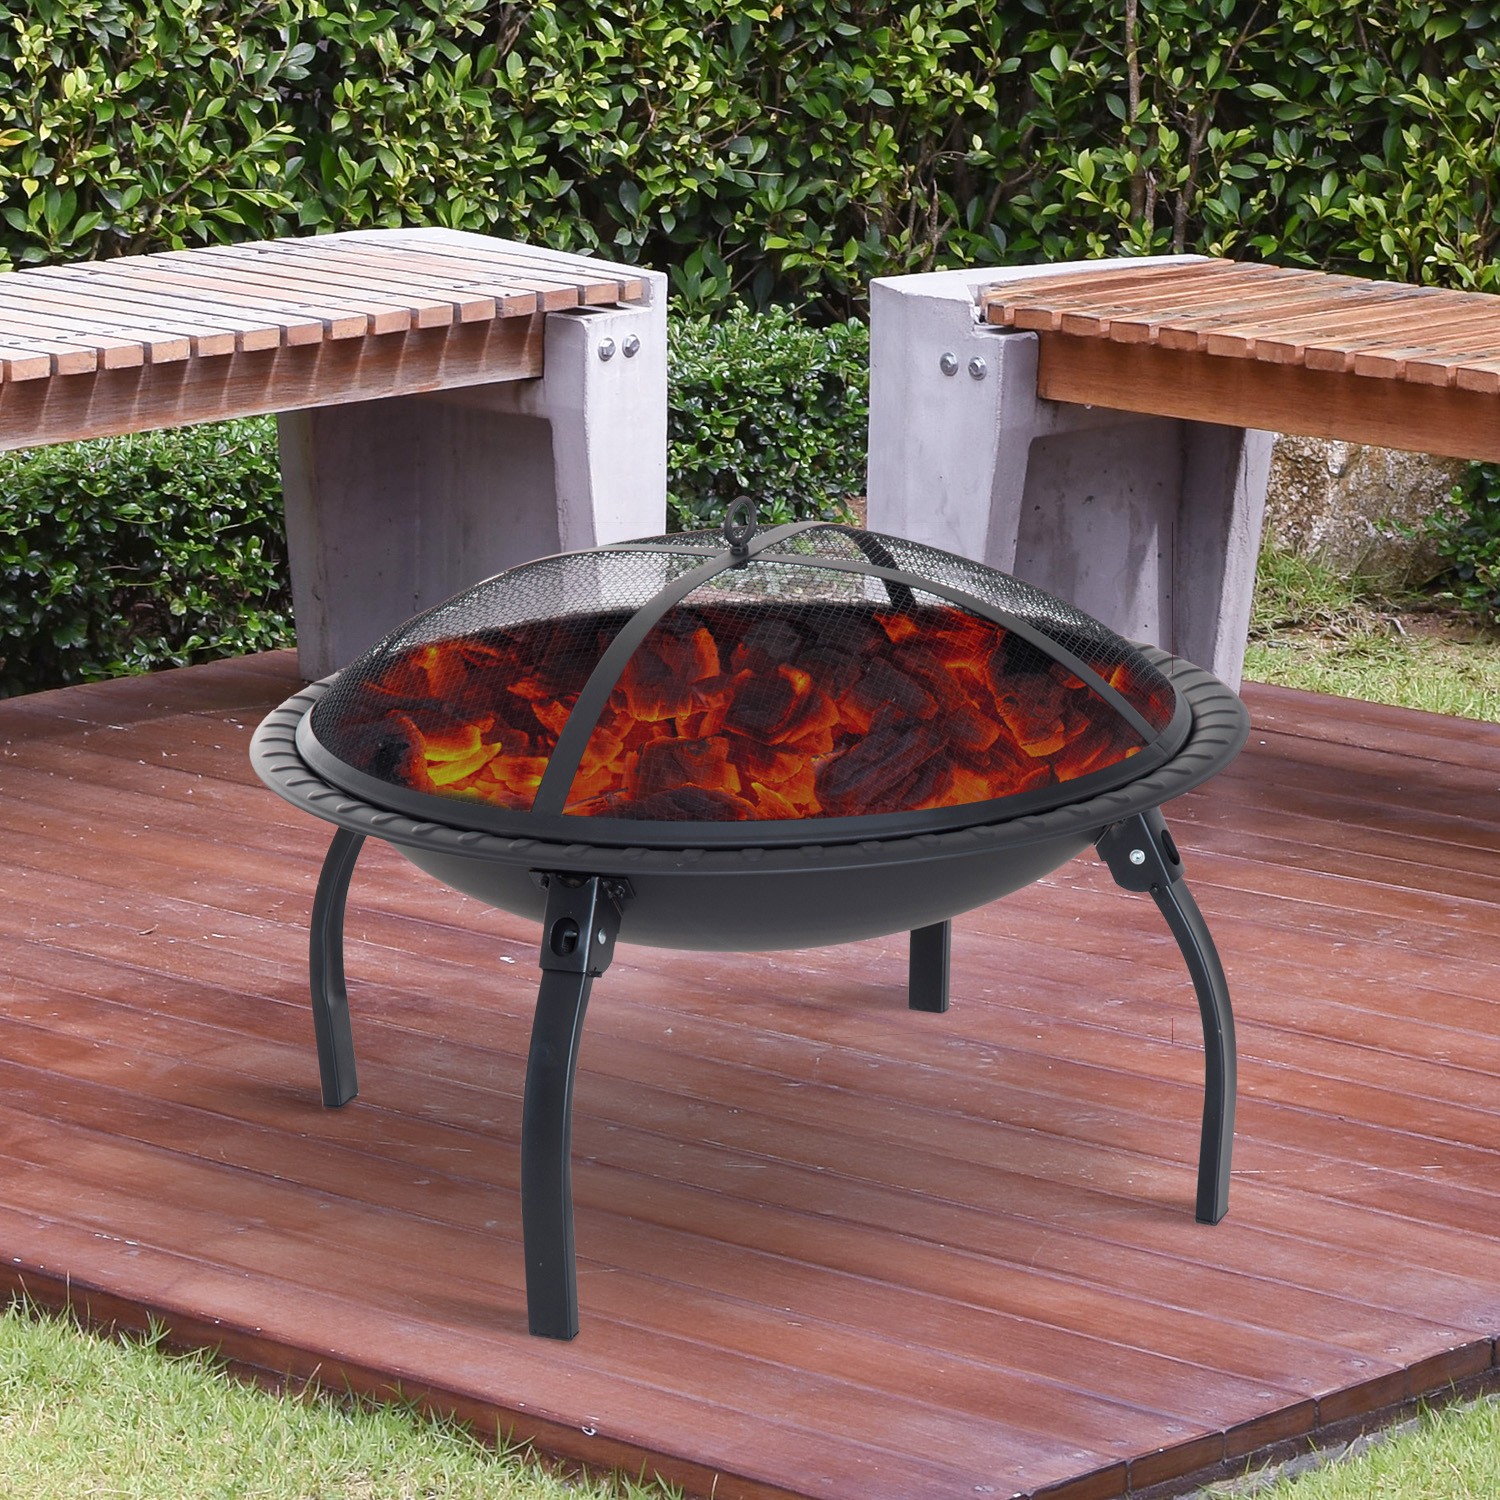 "Image of CAD $82.99 Outsunny 28"" Round Firepit Backyard Folding Fireplace Patio Stove with Poker and Spark Screen / Garden Portable Wood Burning Black Fire Pit Porch w/ Canada 25093585982"